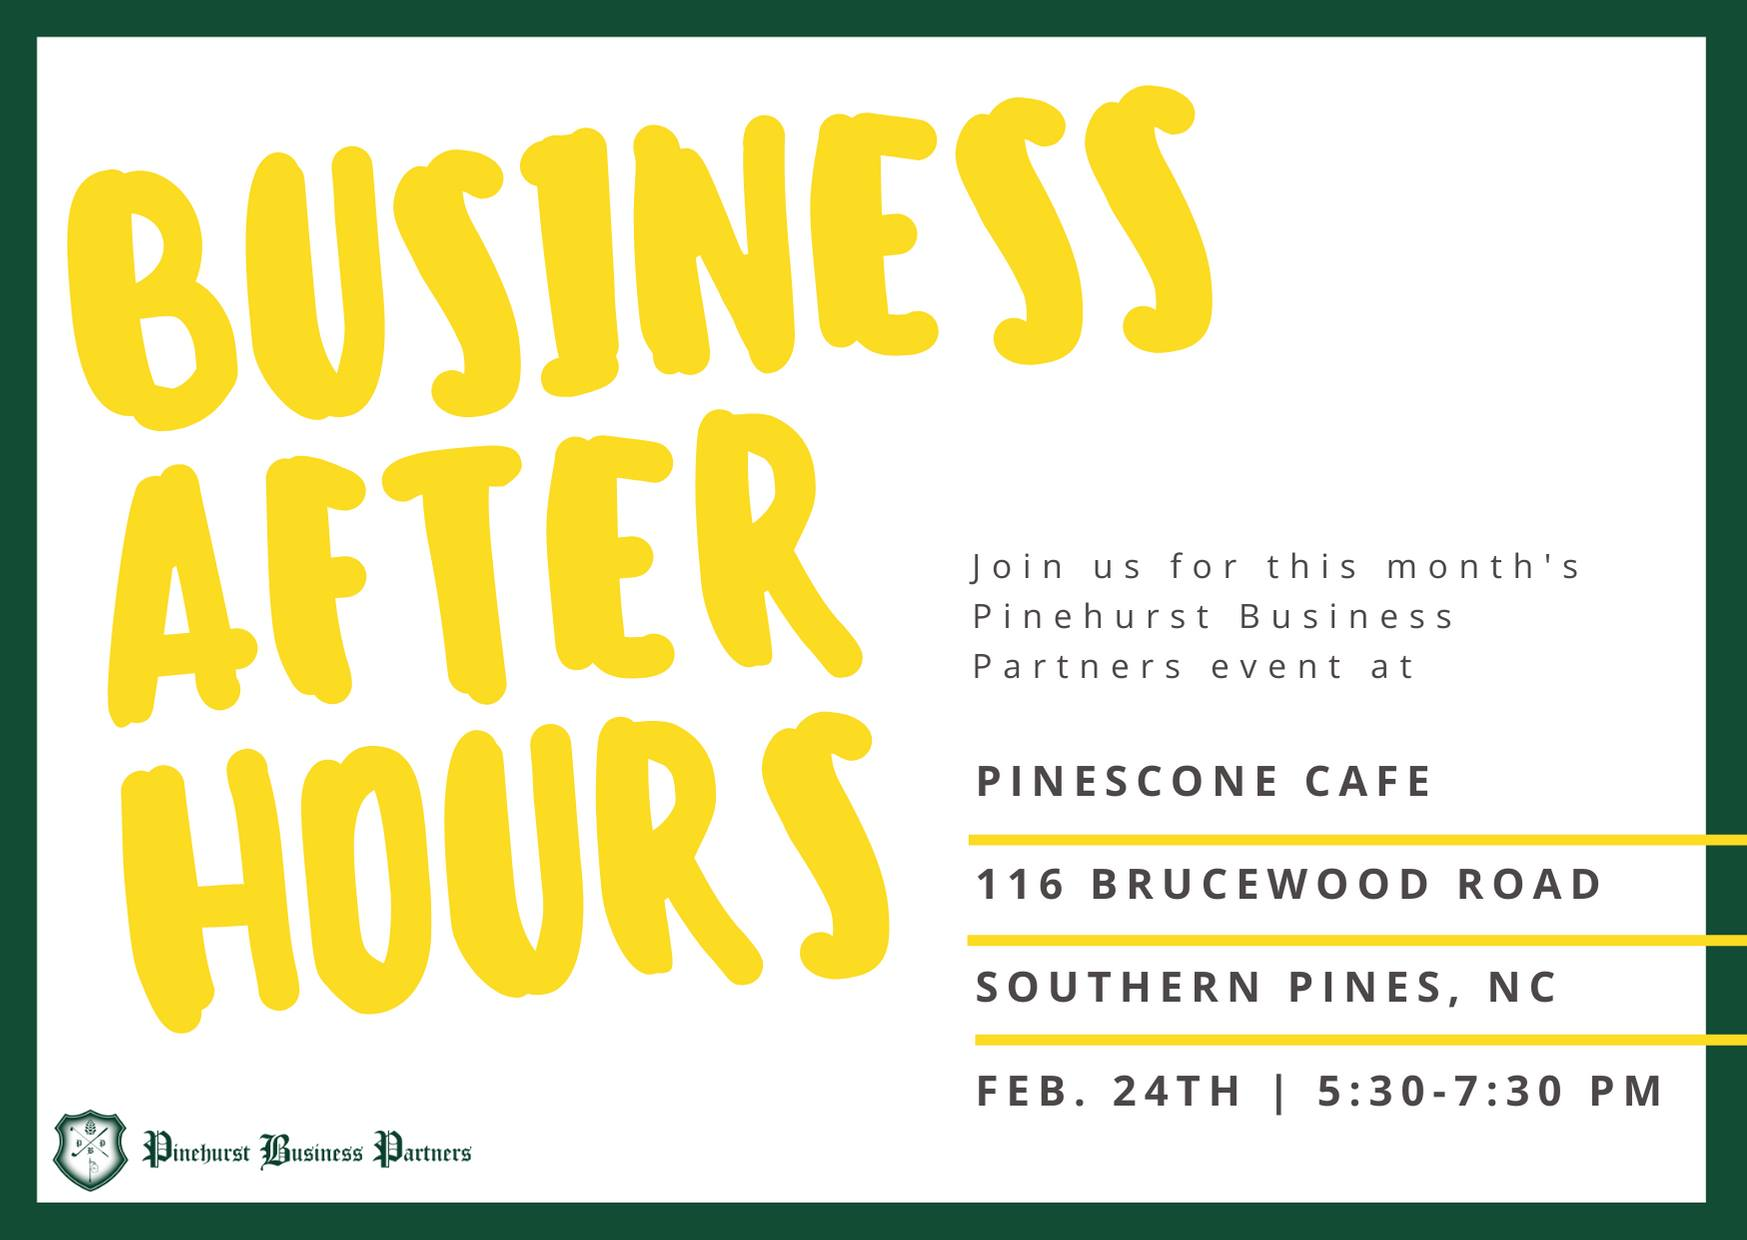 Business After Hours 2/24